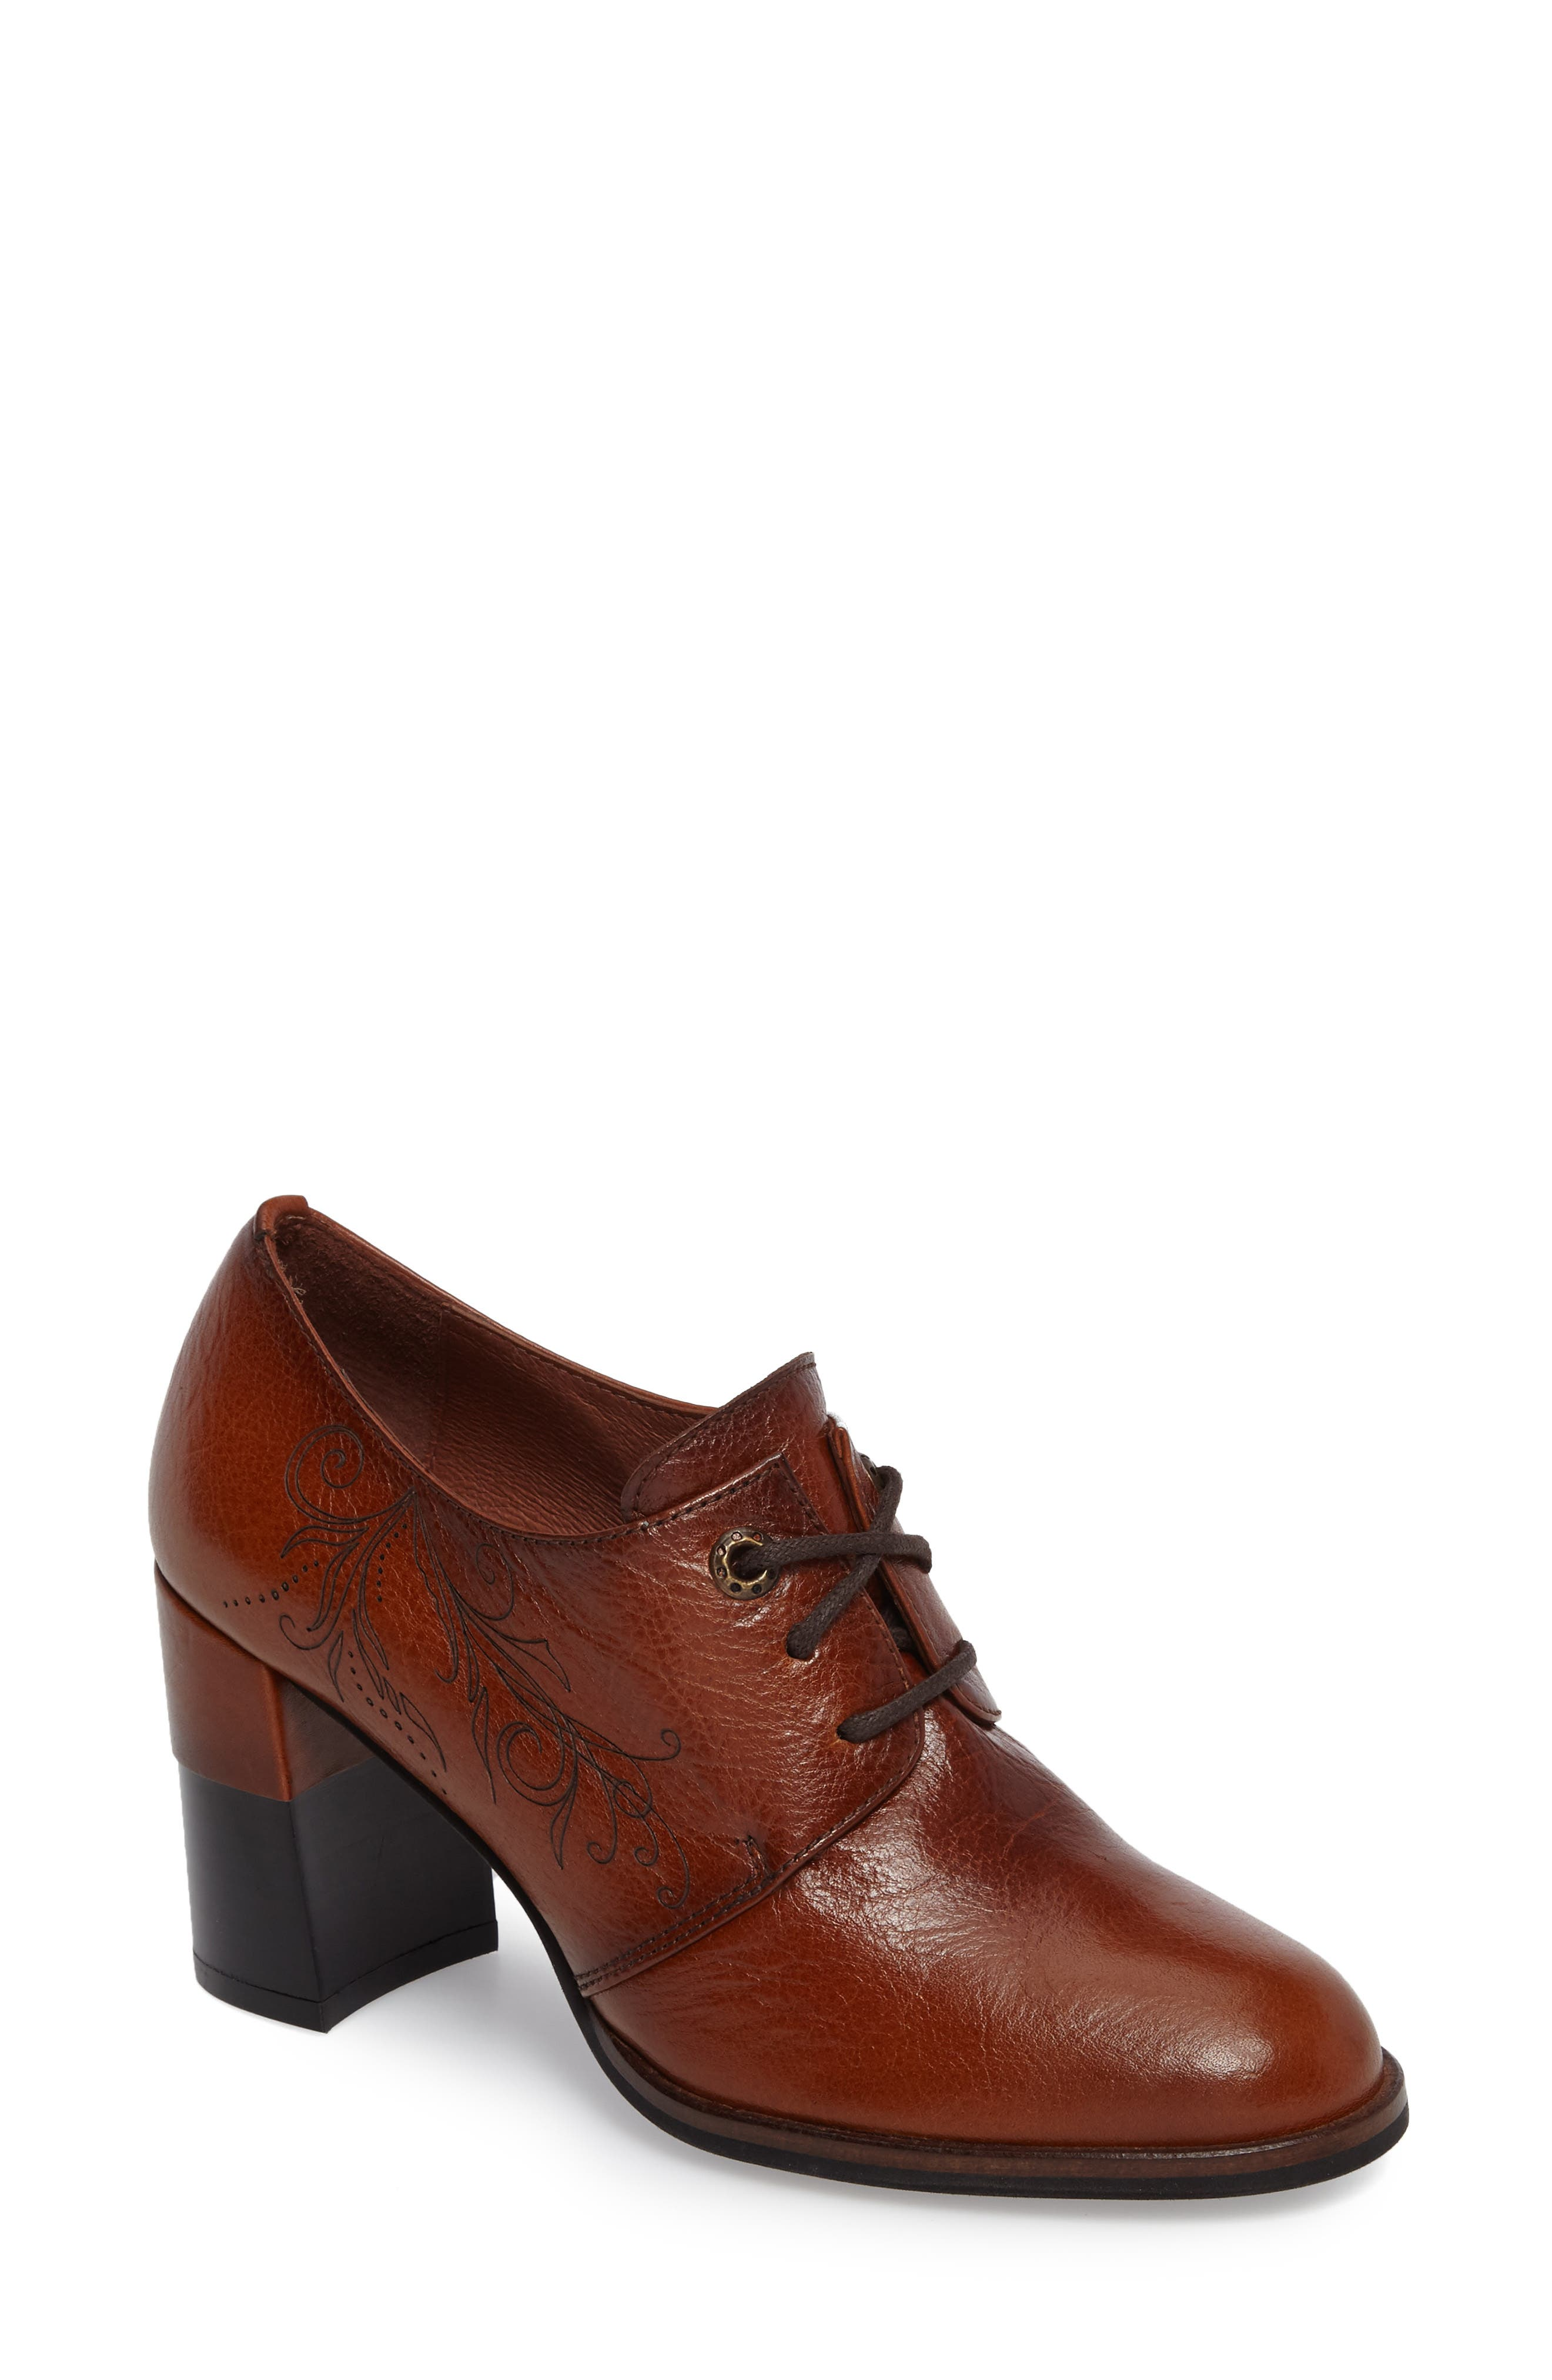 Hayes Lace-Up Pump,                             Main thumbnail 1, color,                             CUOIO LEATHER